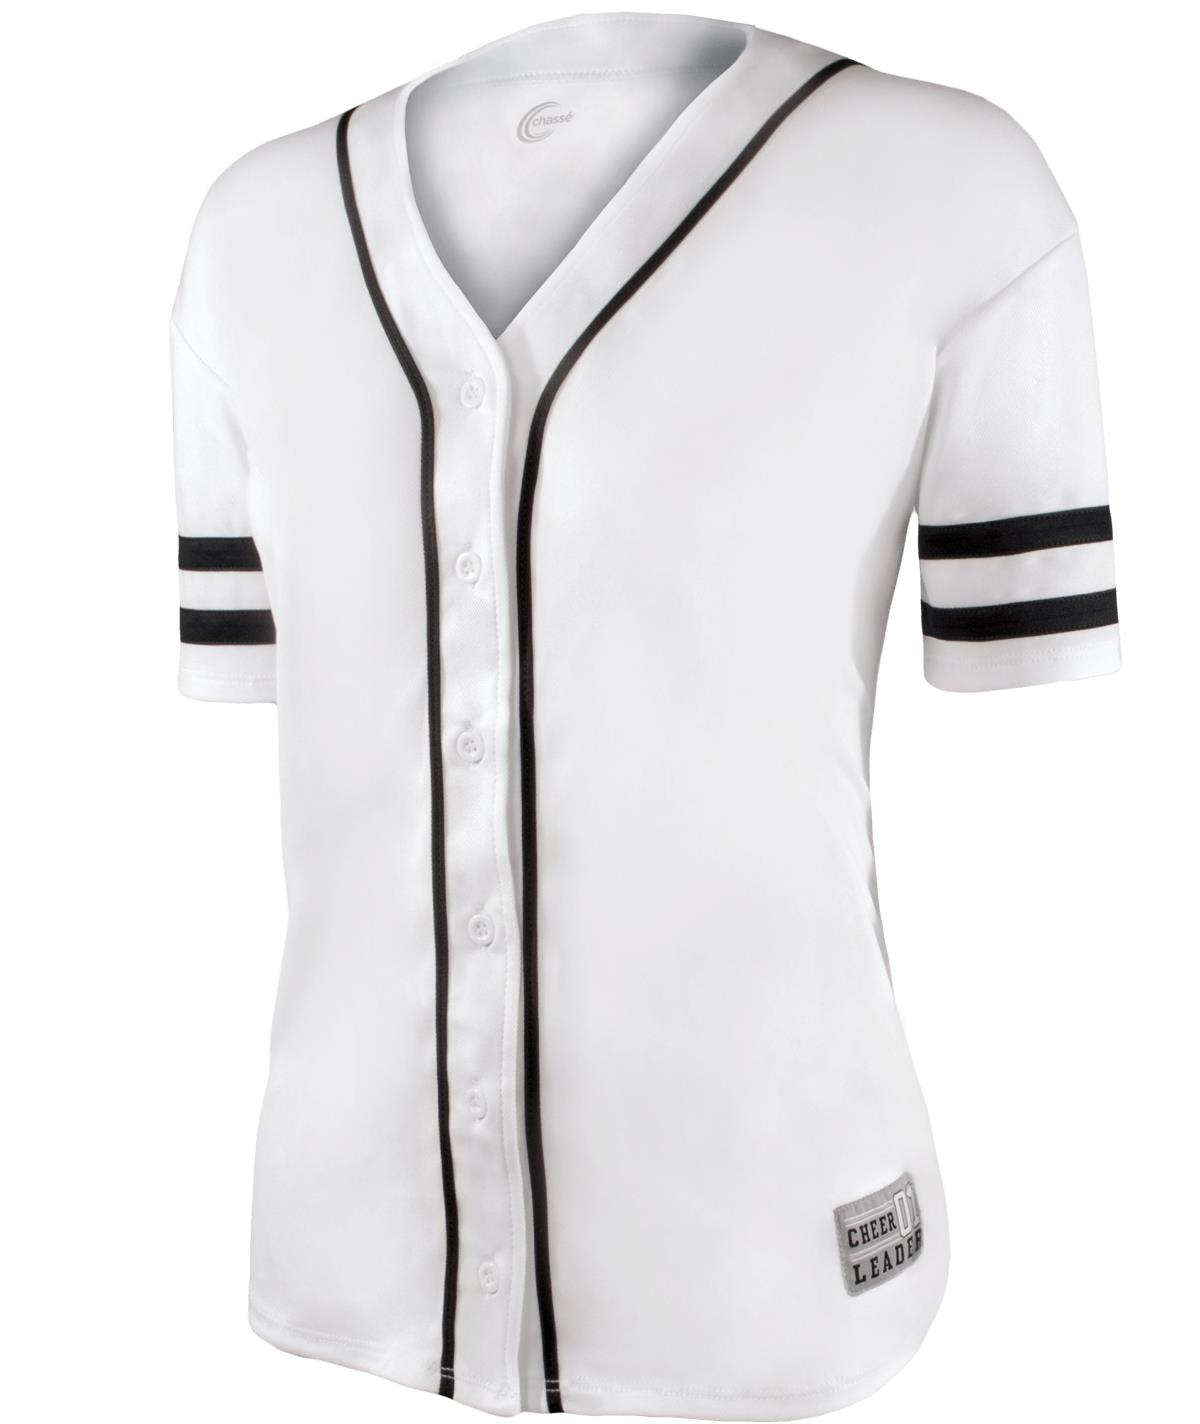 Chasse Home Run Jersey